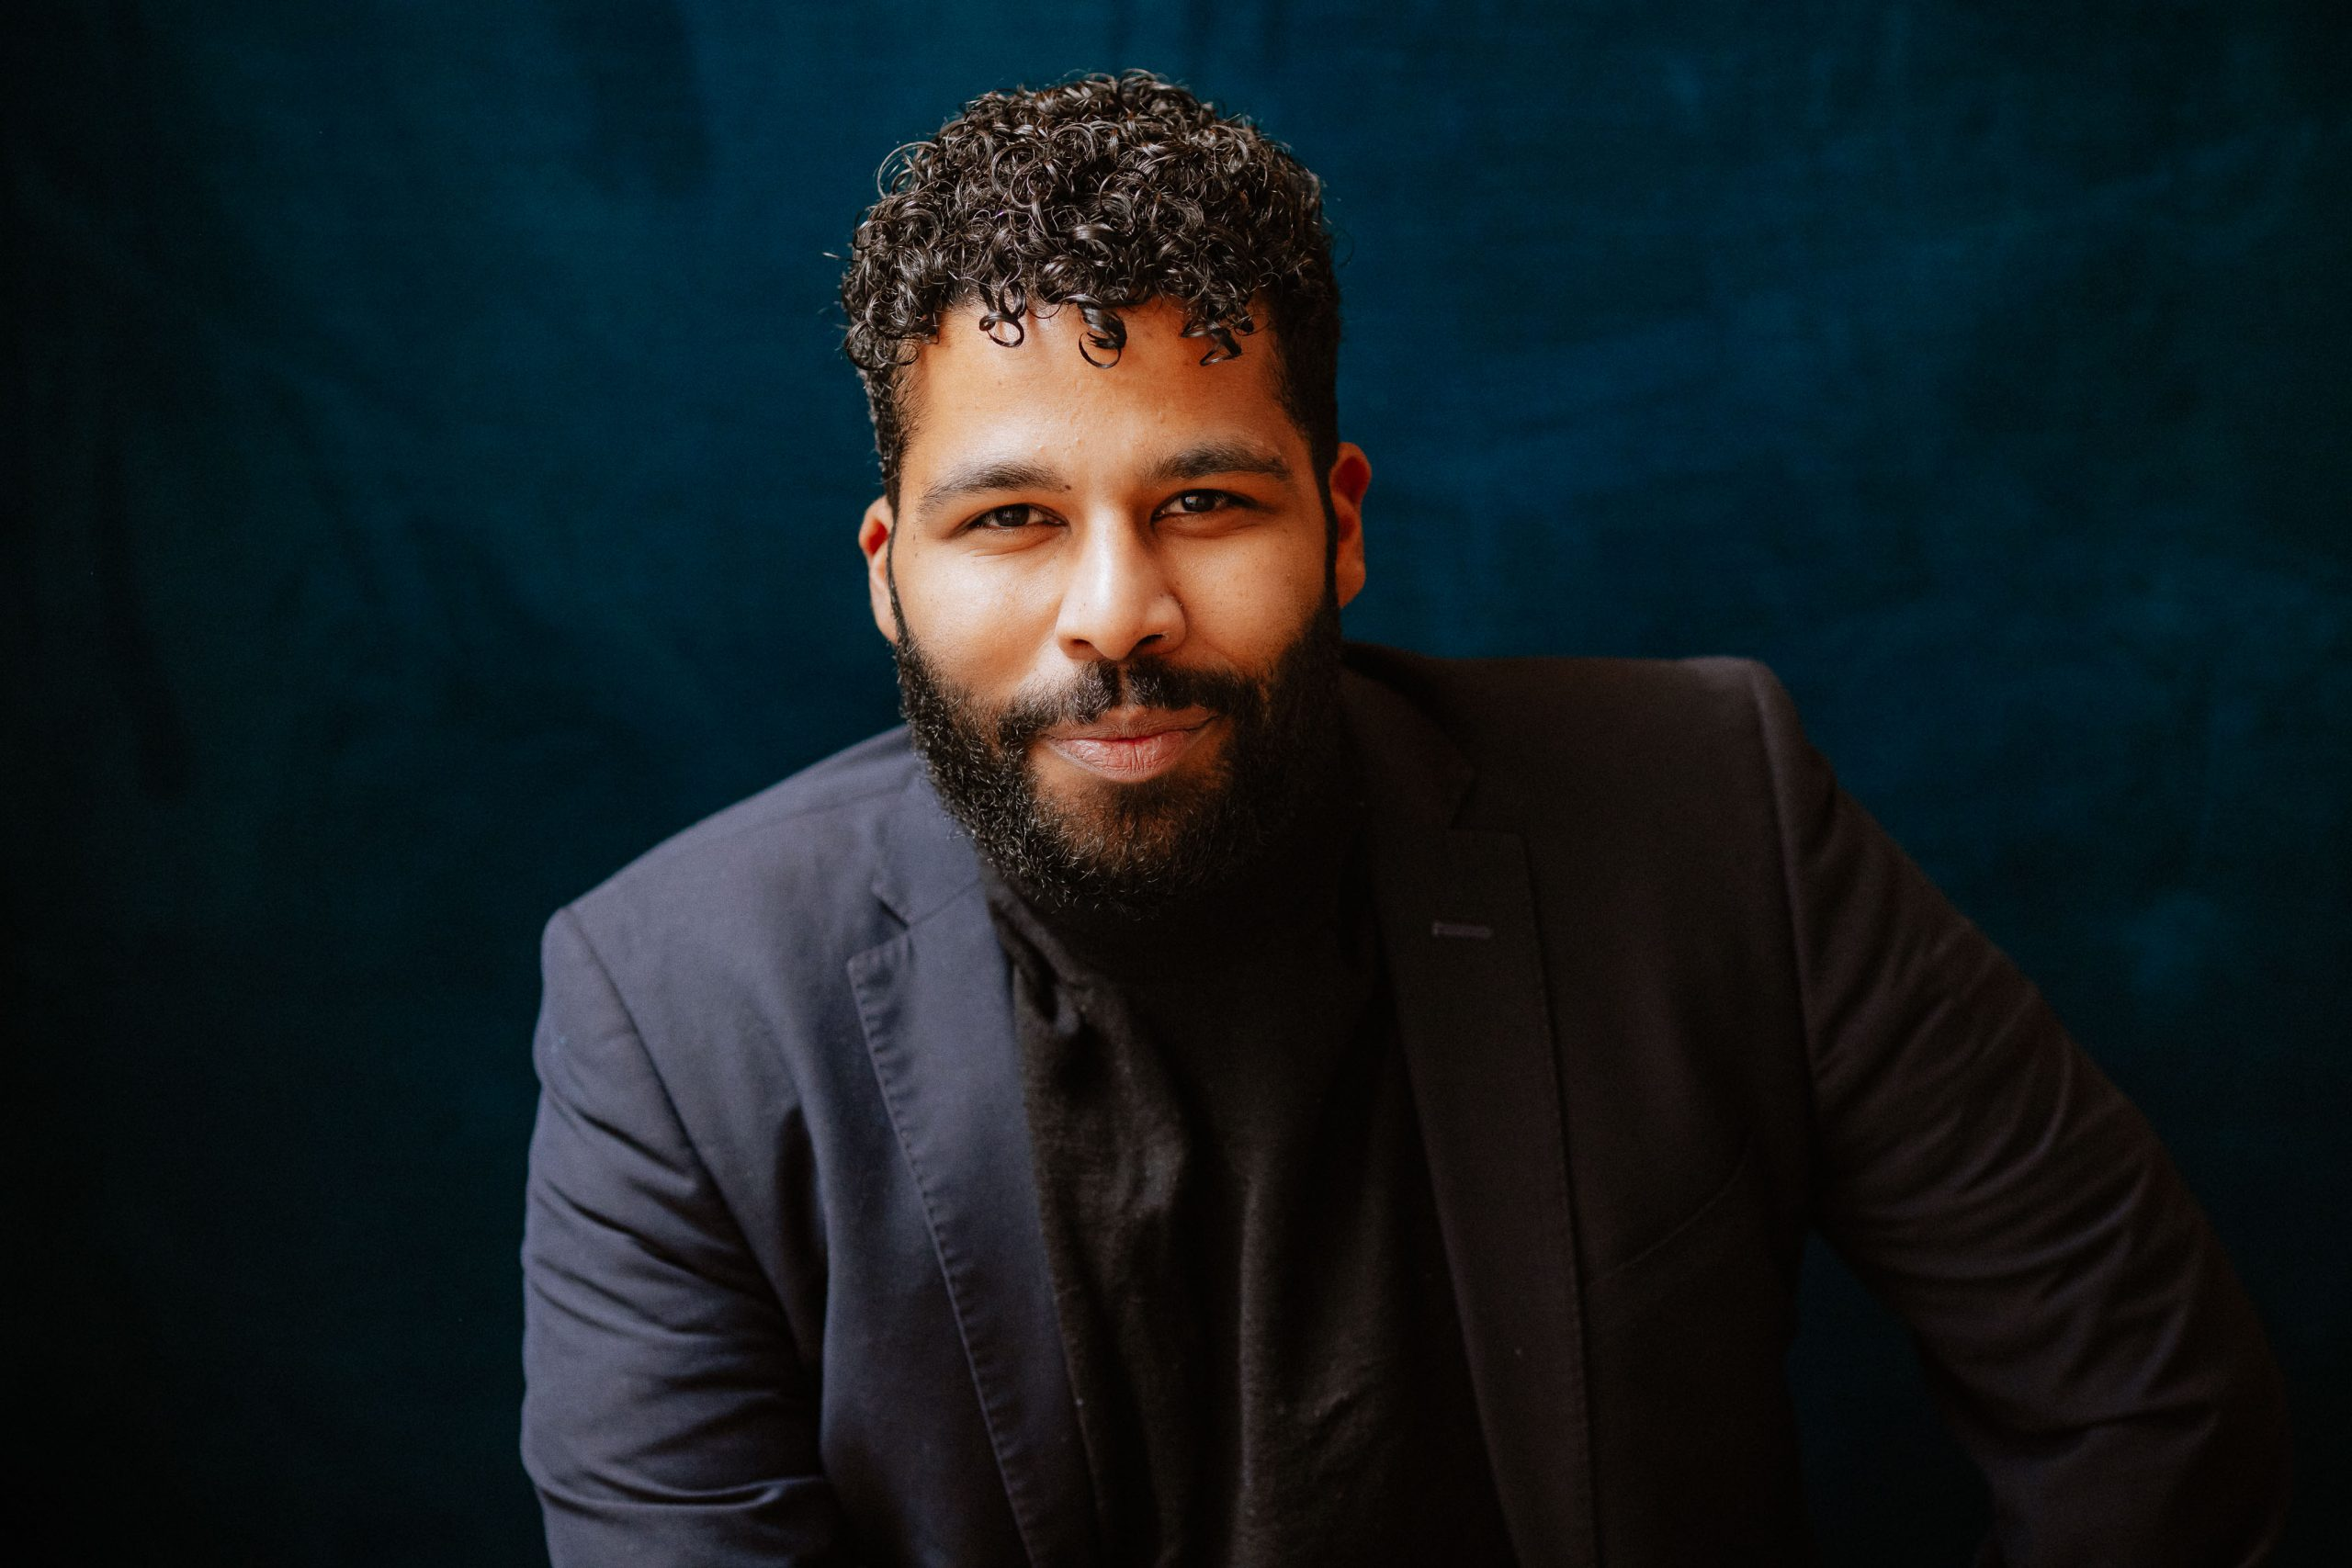 Jordan is wearing a navy blue suit jacket and black shirt. His hair is black with shaved sides and short curly hair on top, a few tendrils falling onto his forehead. Jordan's facial hair; a full beard and mustache, is dark brown/black. He is sitting in front of a navy suede background.